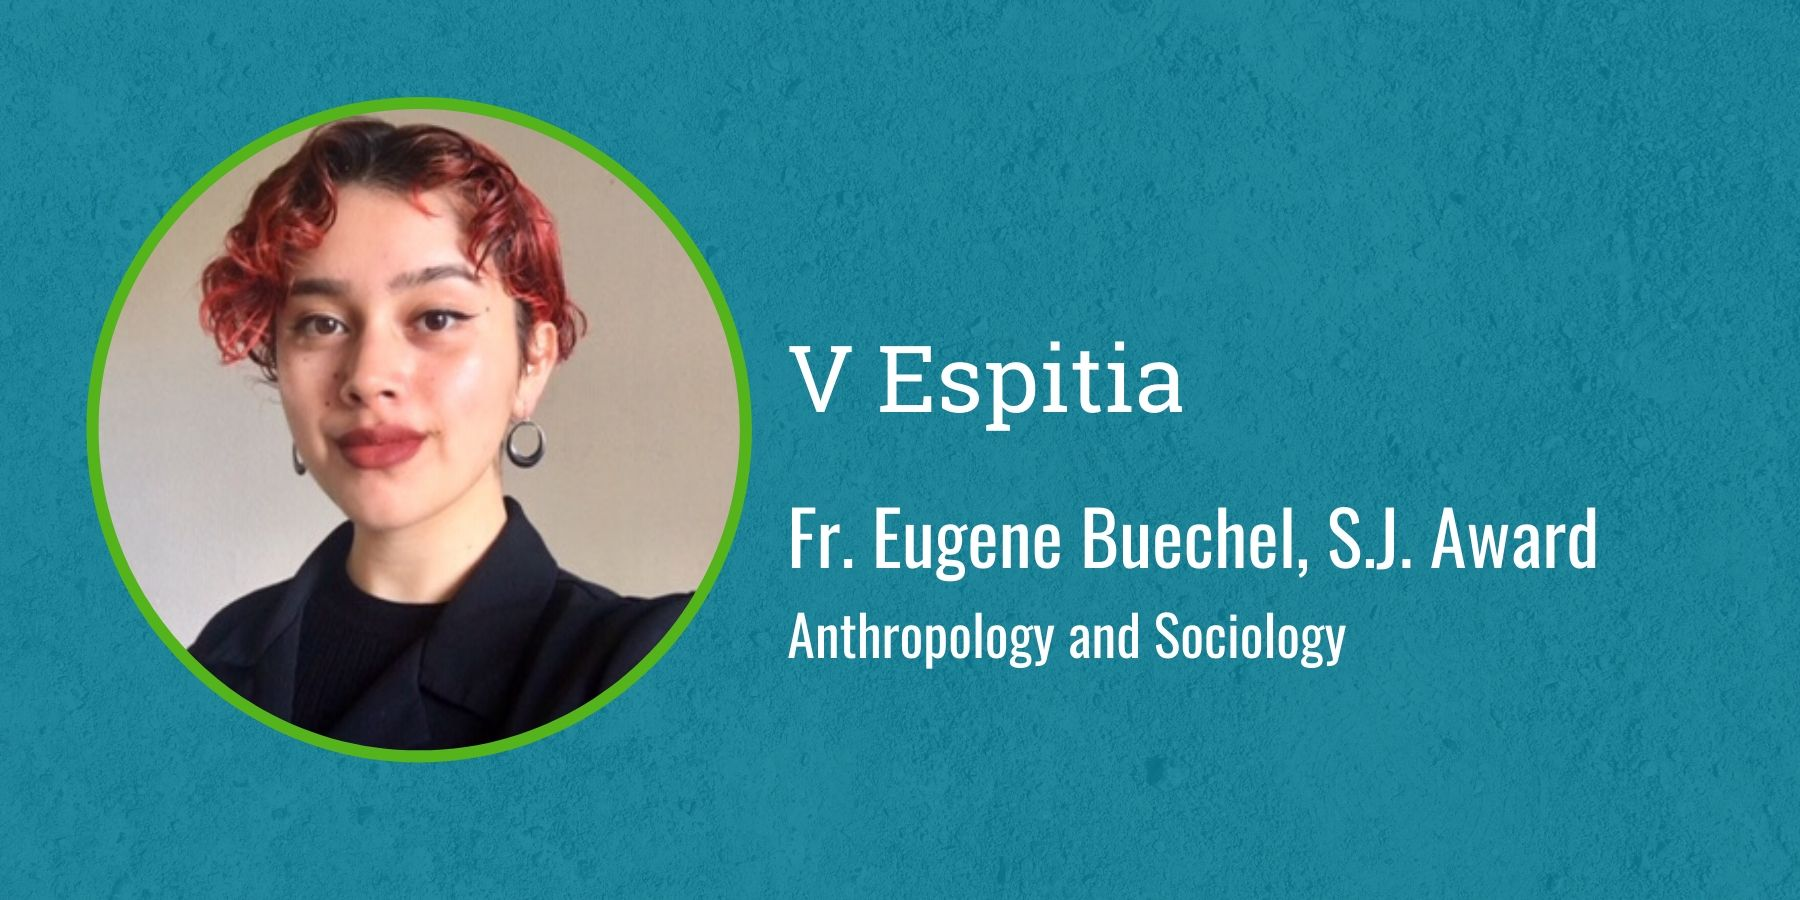 Photo of Veronica Espitia and text Fr. Eugene Buechel, S.J. Award, Anthropology and Sociology